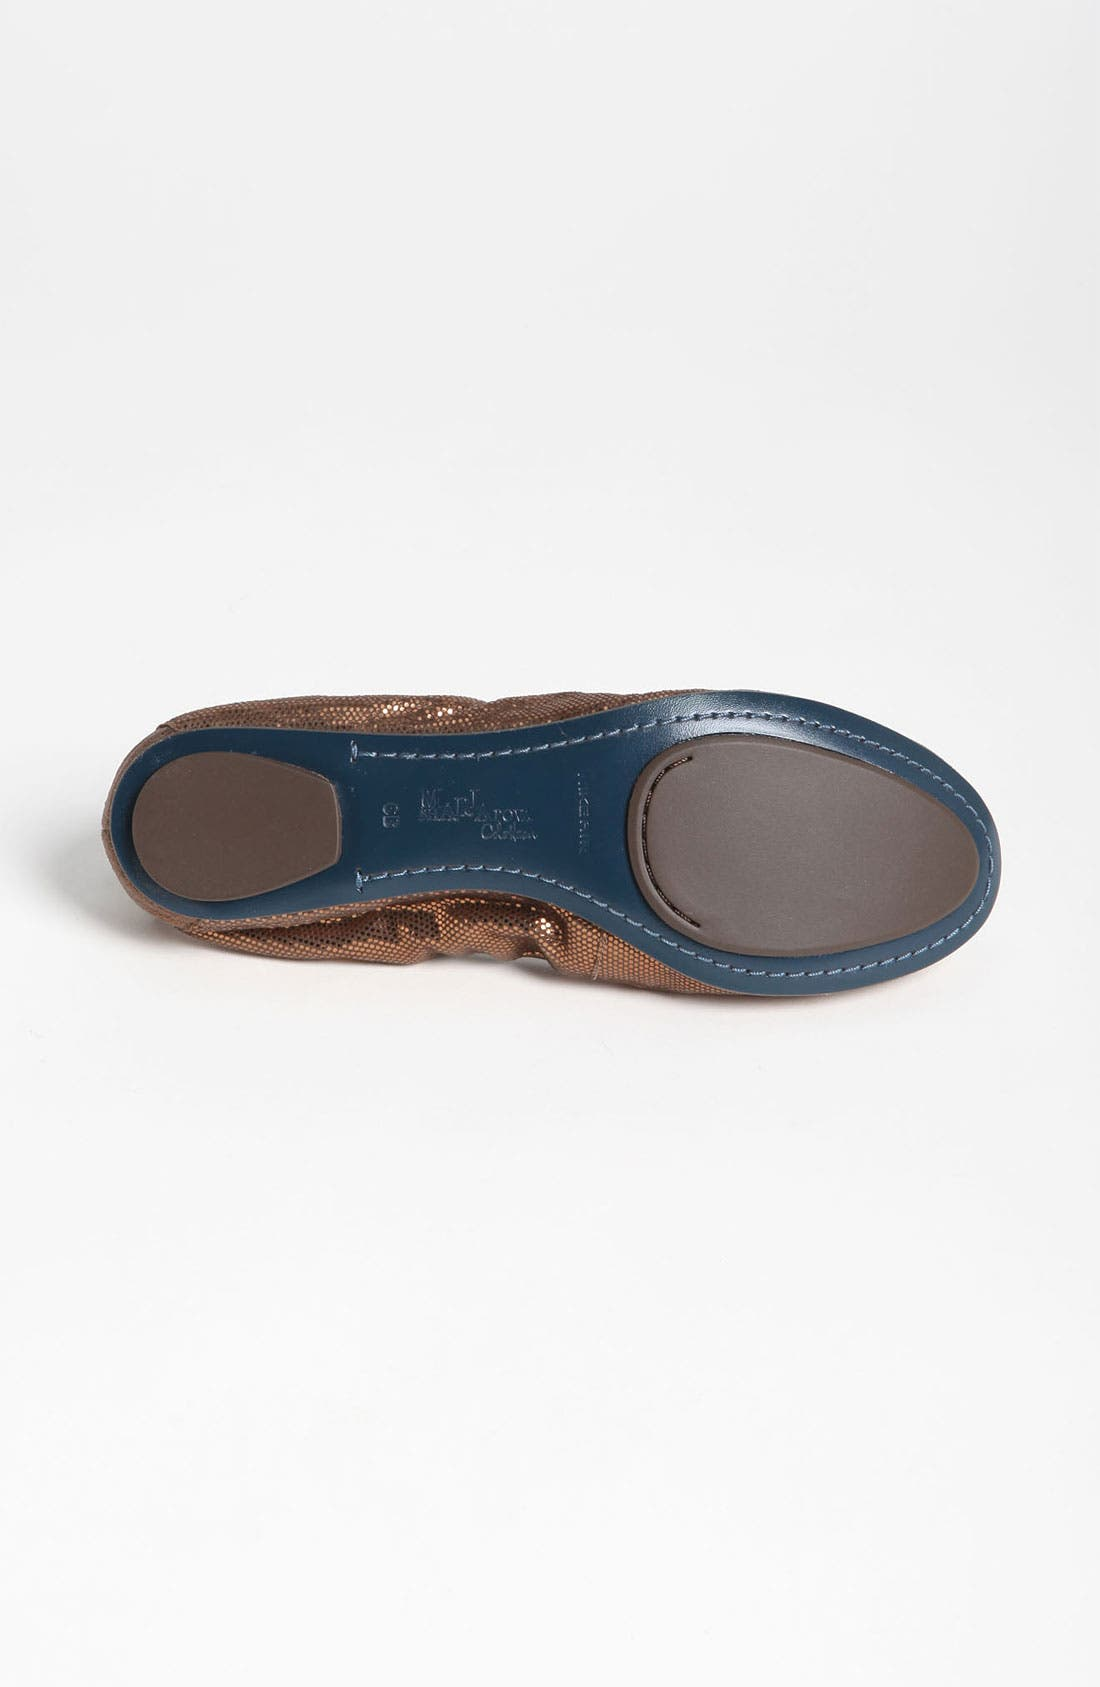 ,                             Maria Sharapova by Cole Haan 'Air Bacara' Flat,                             Alternate thumbnail 31, color,                             220